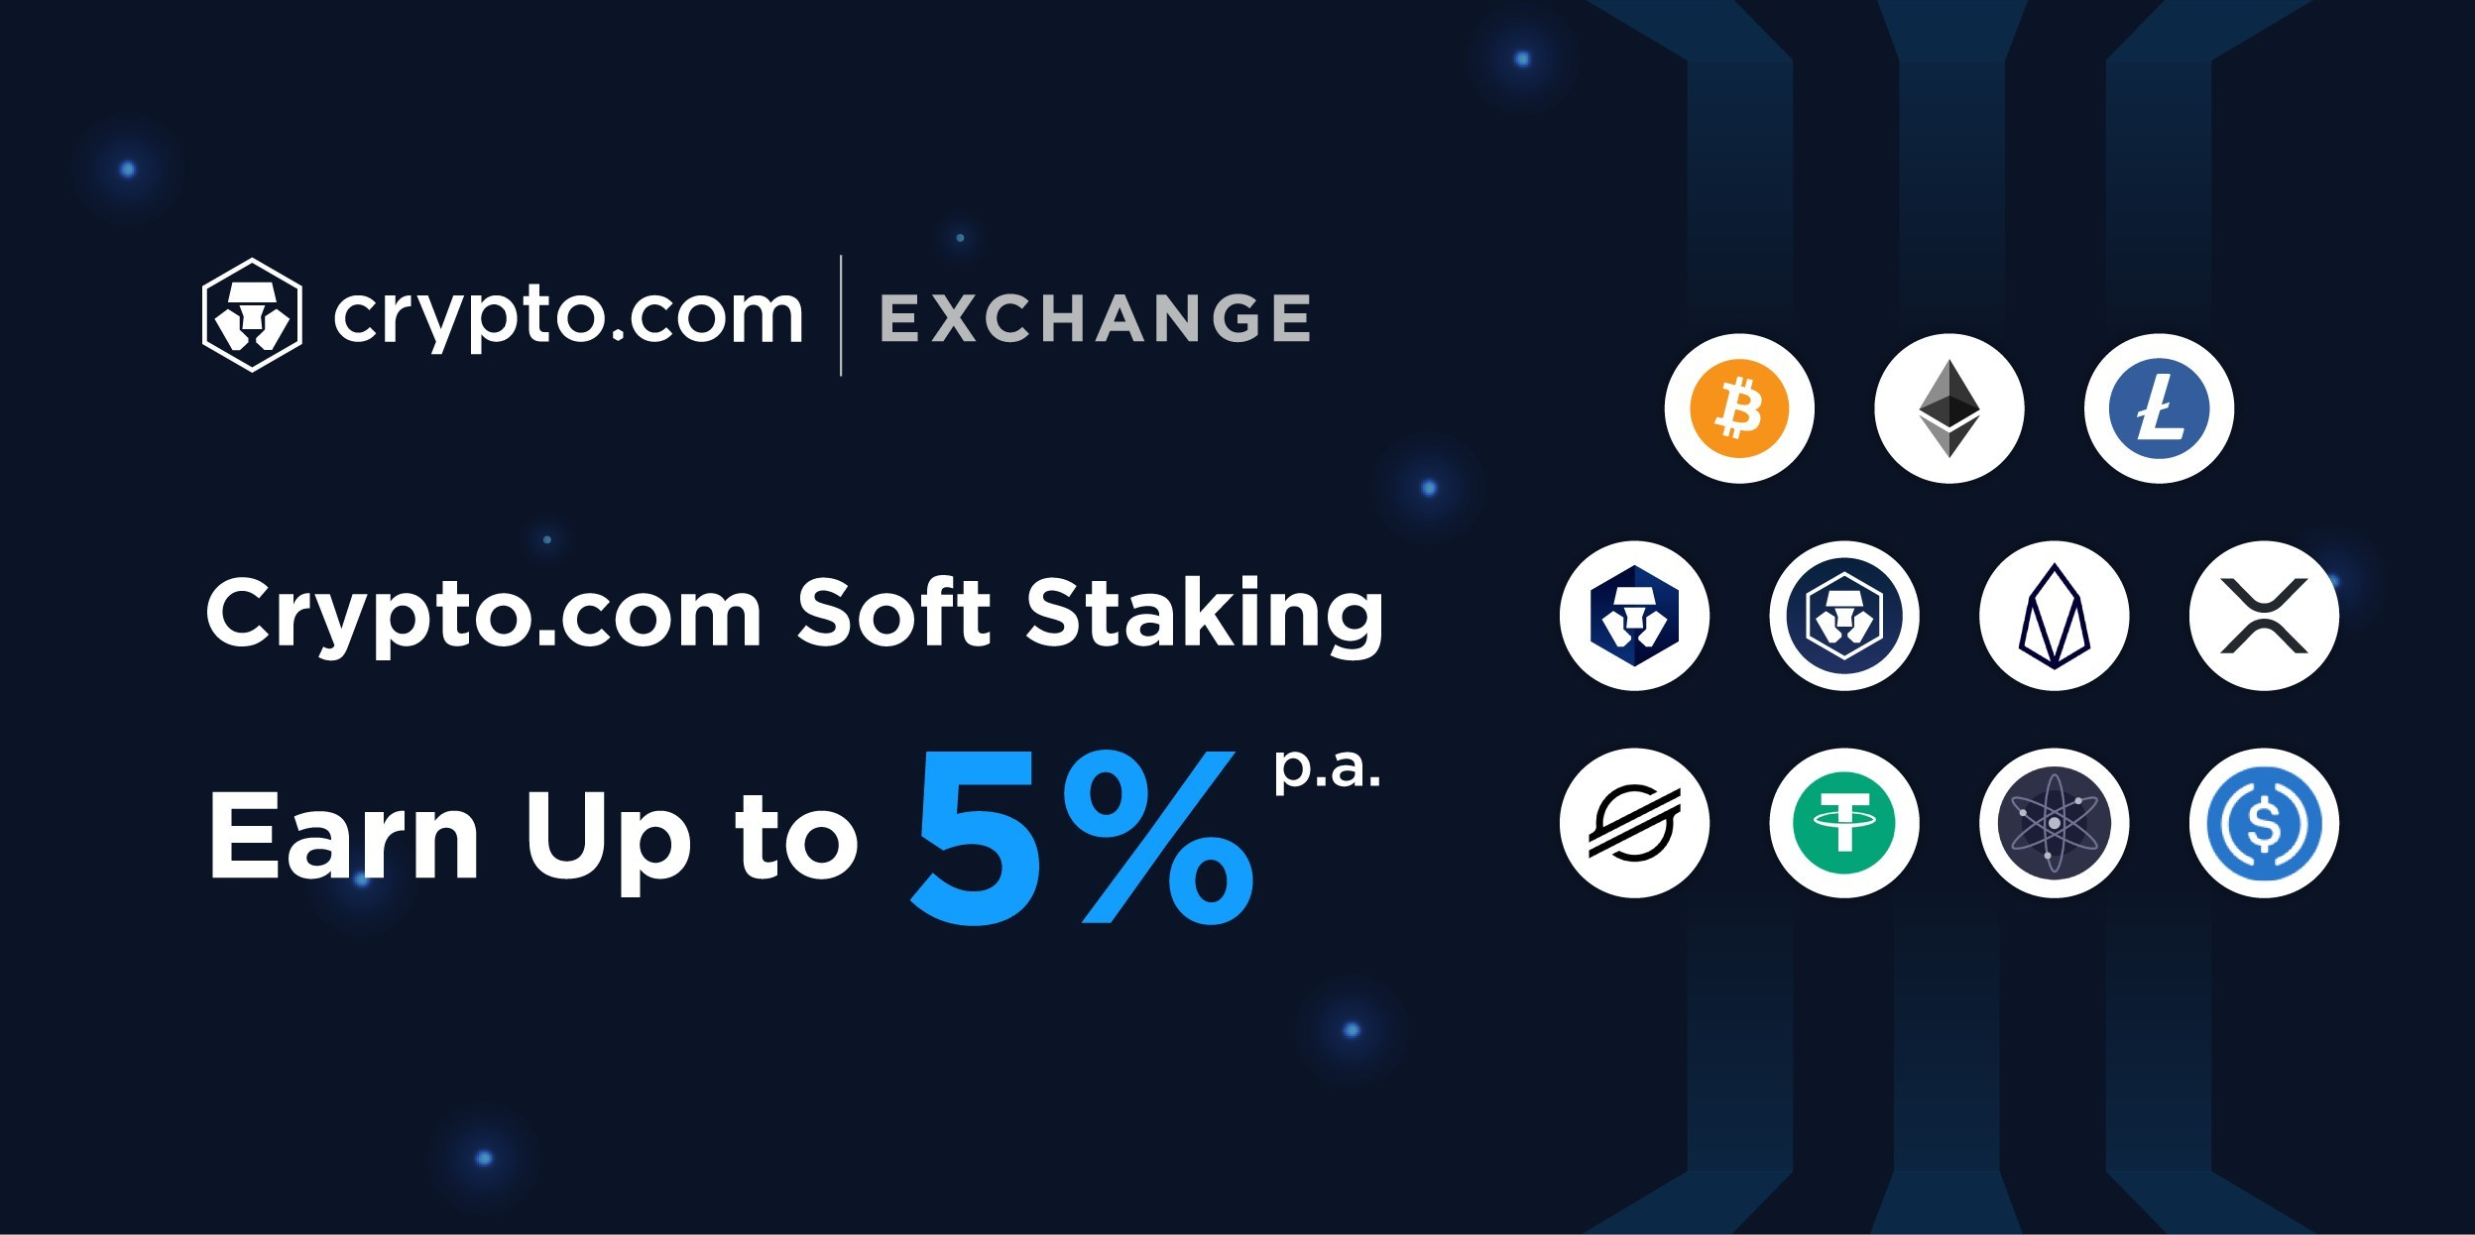 Crypto.com Exchange Staking